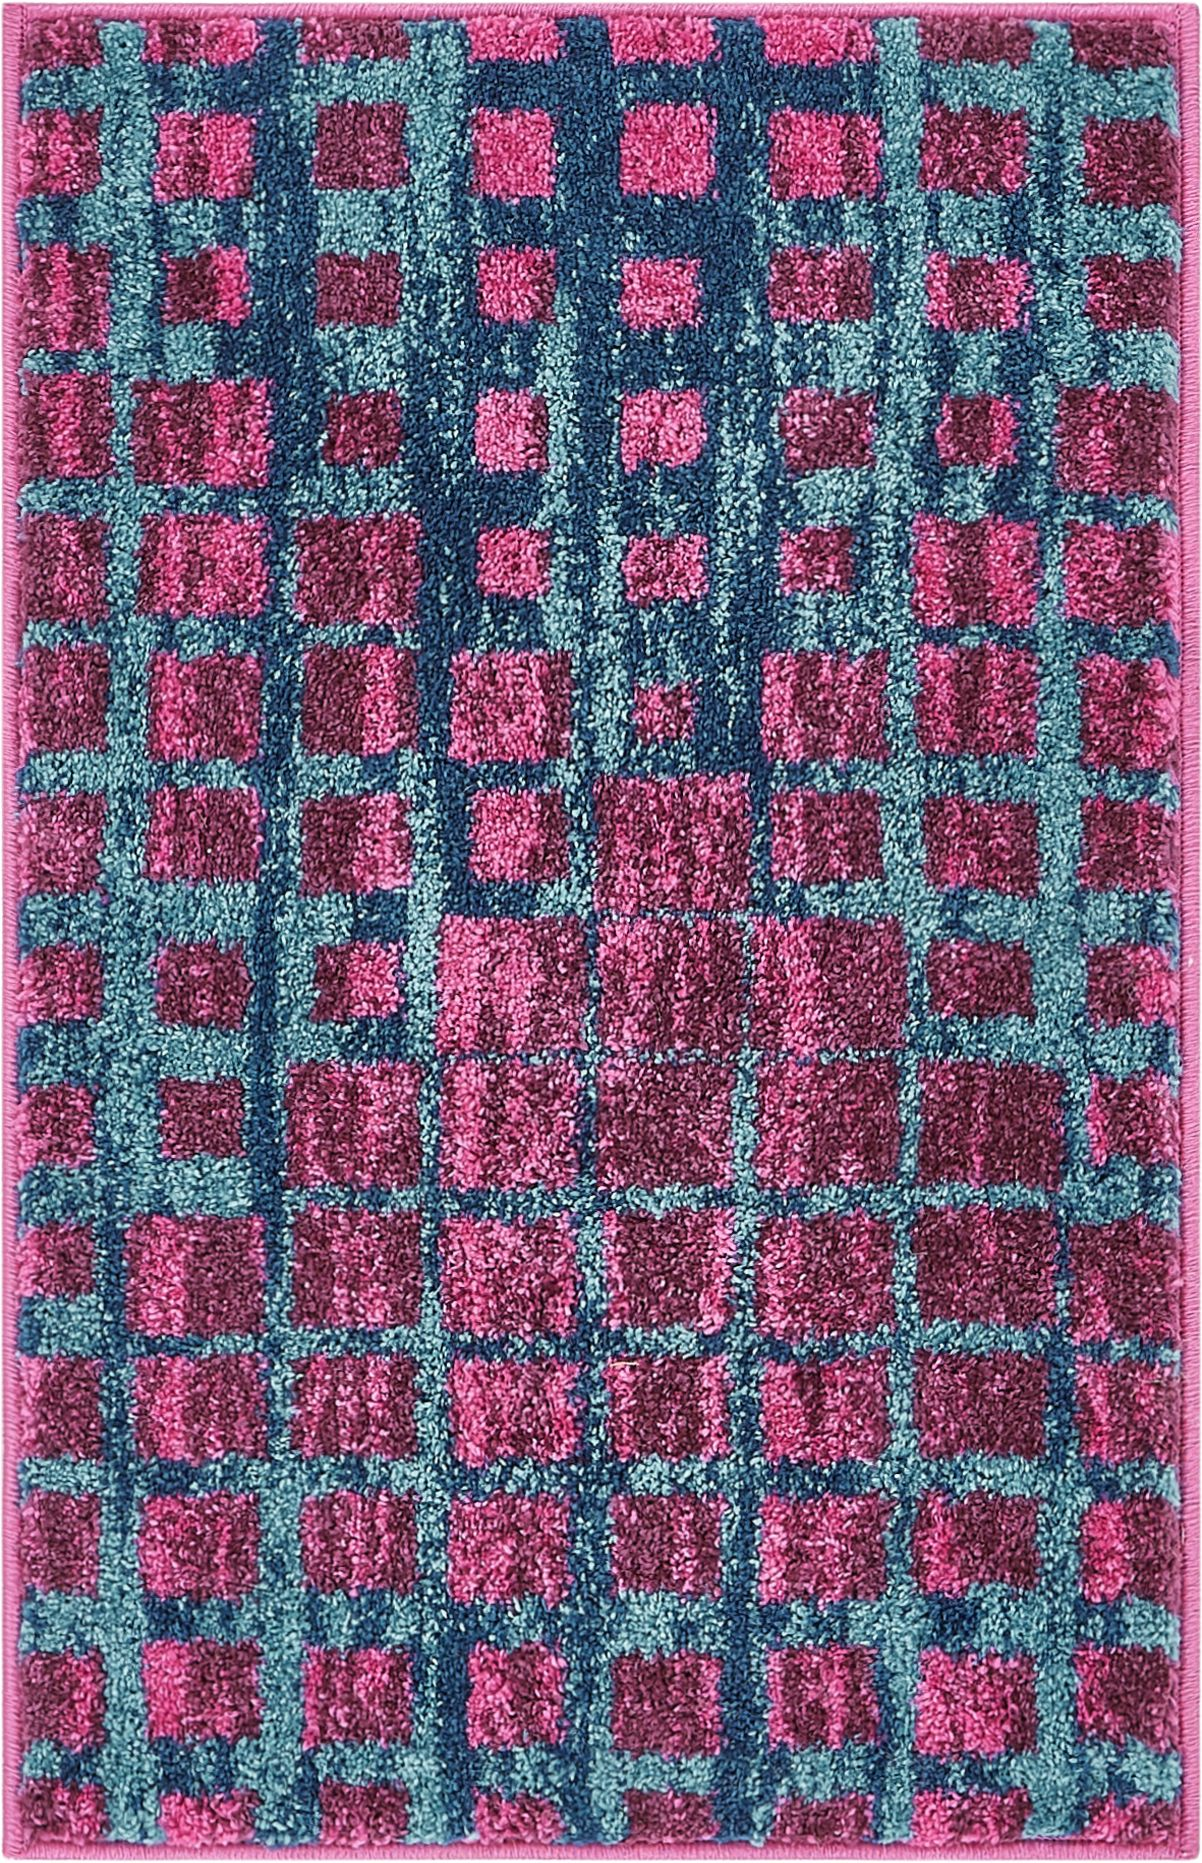 Well Woven Casablanca Geometric Ombre Squares Boxes Purple Blue Vibrant Modern Area Rug 20x31 20 X 31 Mat Abstract Lines Squares Contemporary Thick Soft Plush Walmart Com Walmart Com